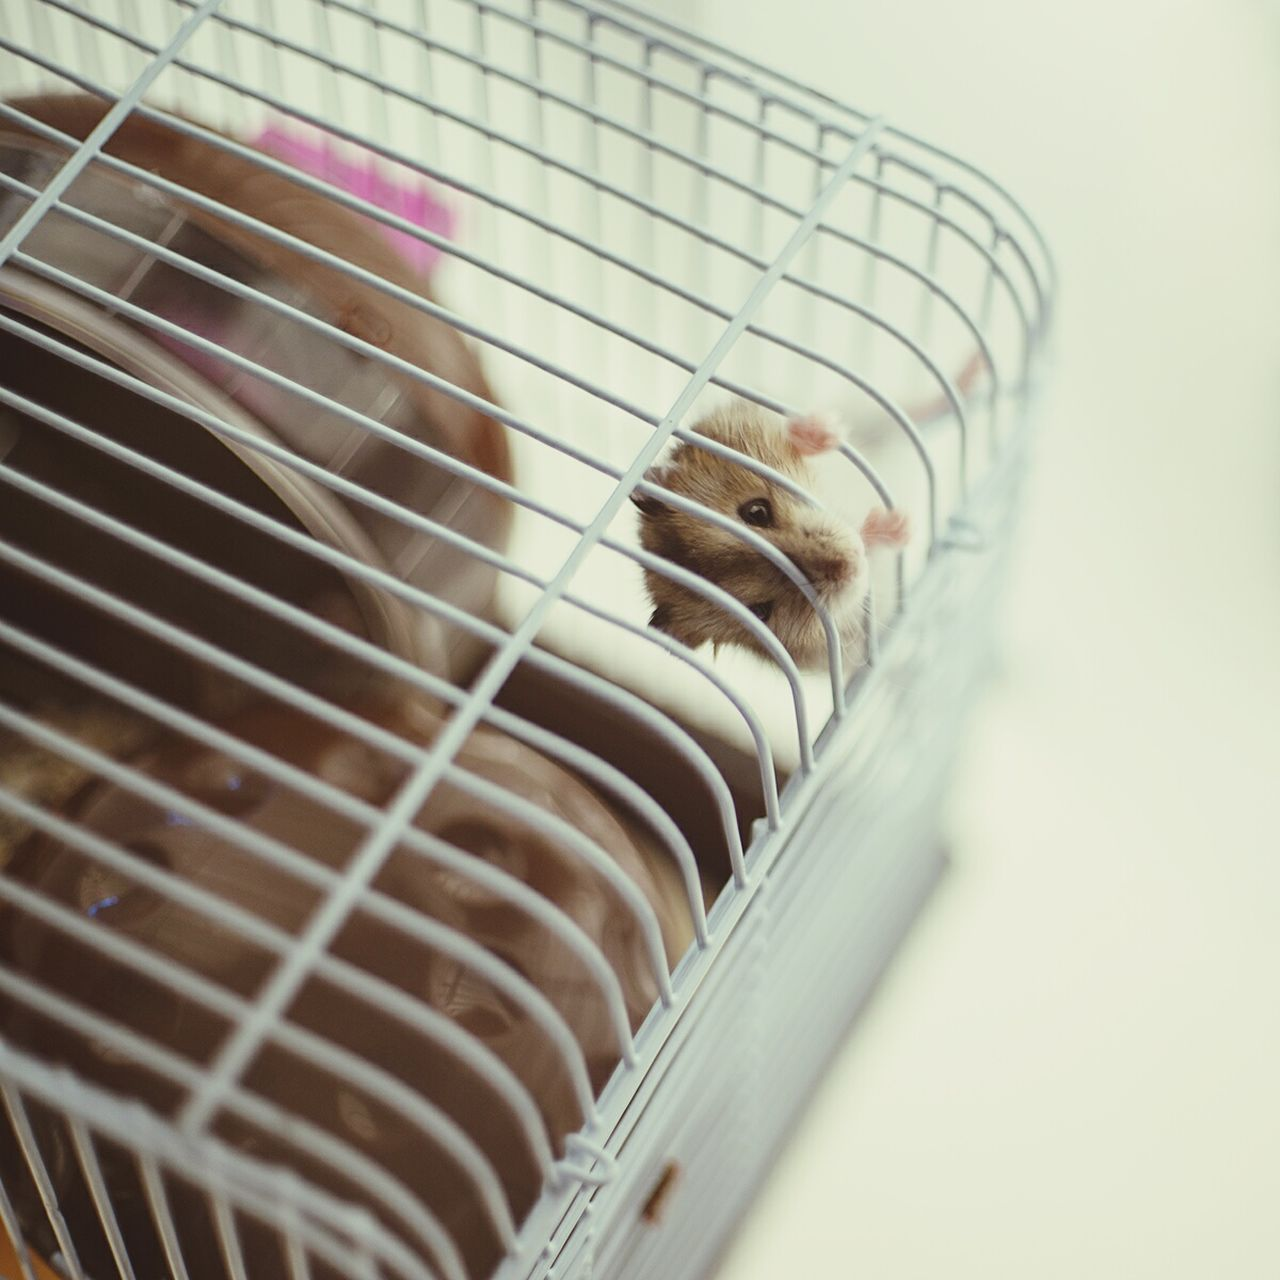 Hamster Hamster Dwarf Hamster Cage Caged Freedom Young Animal